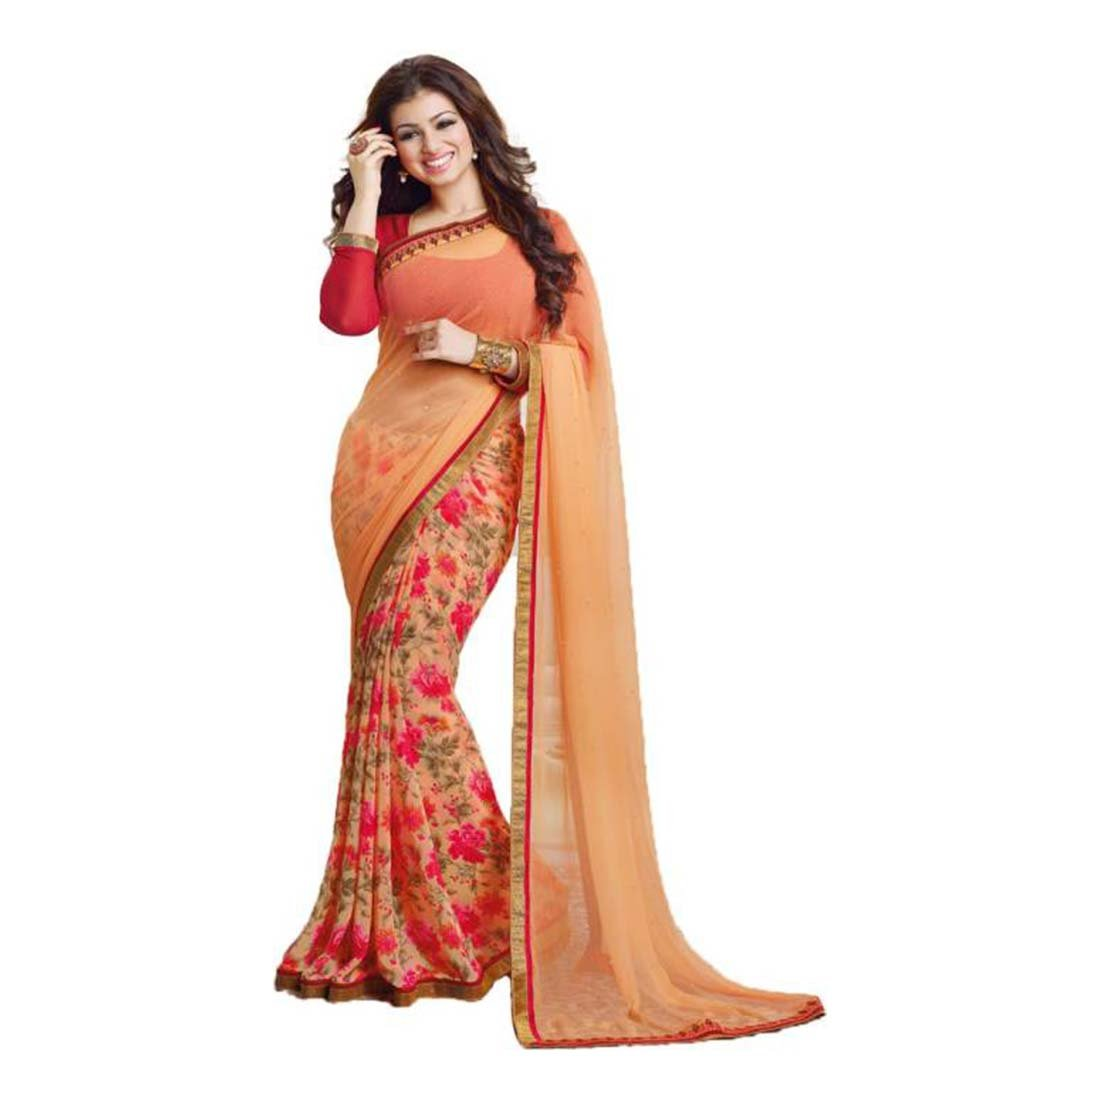 Floral Print Daily Wear Pure Georgette Saree (Orange) Indian Handicrfats Export FKSAR-01251